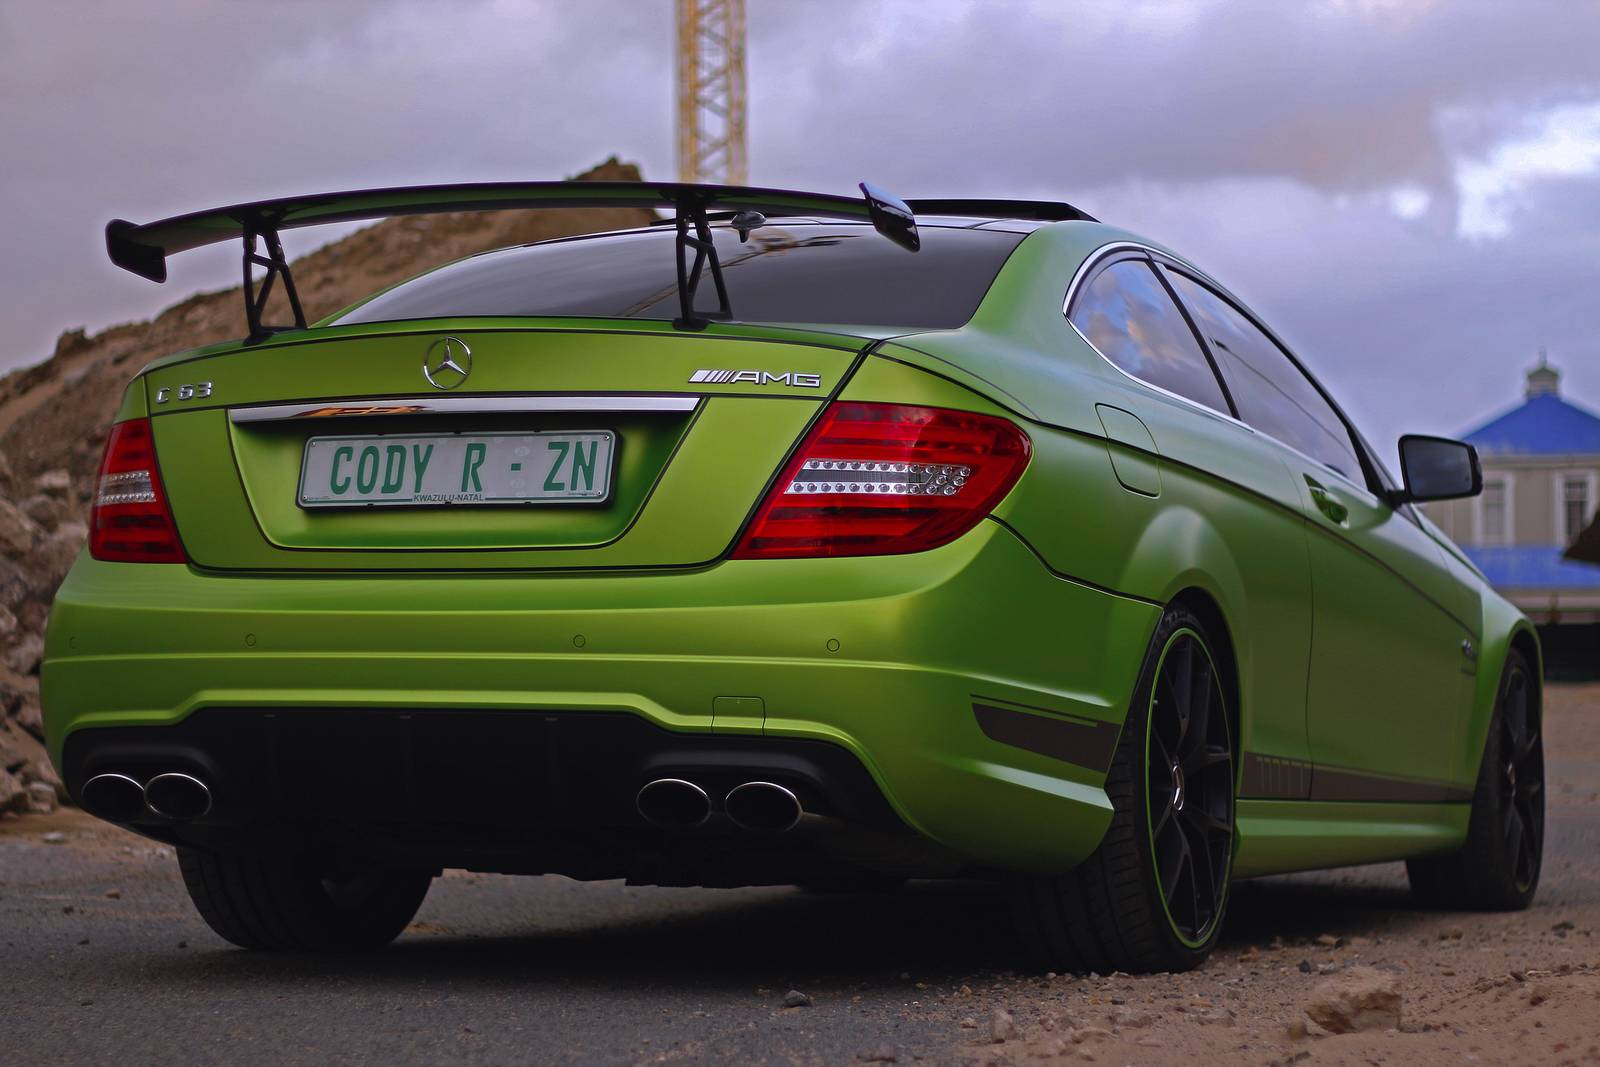 Amg Coupe Legacy Edition 1 Of 10 Ing